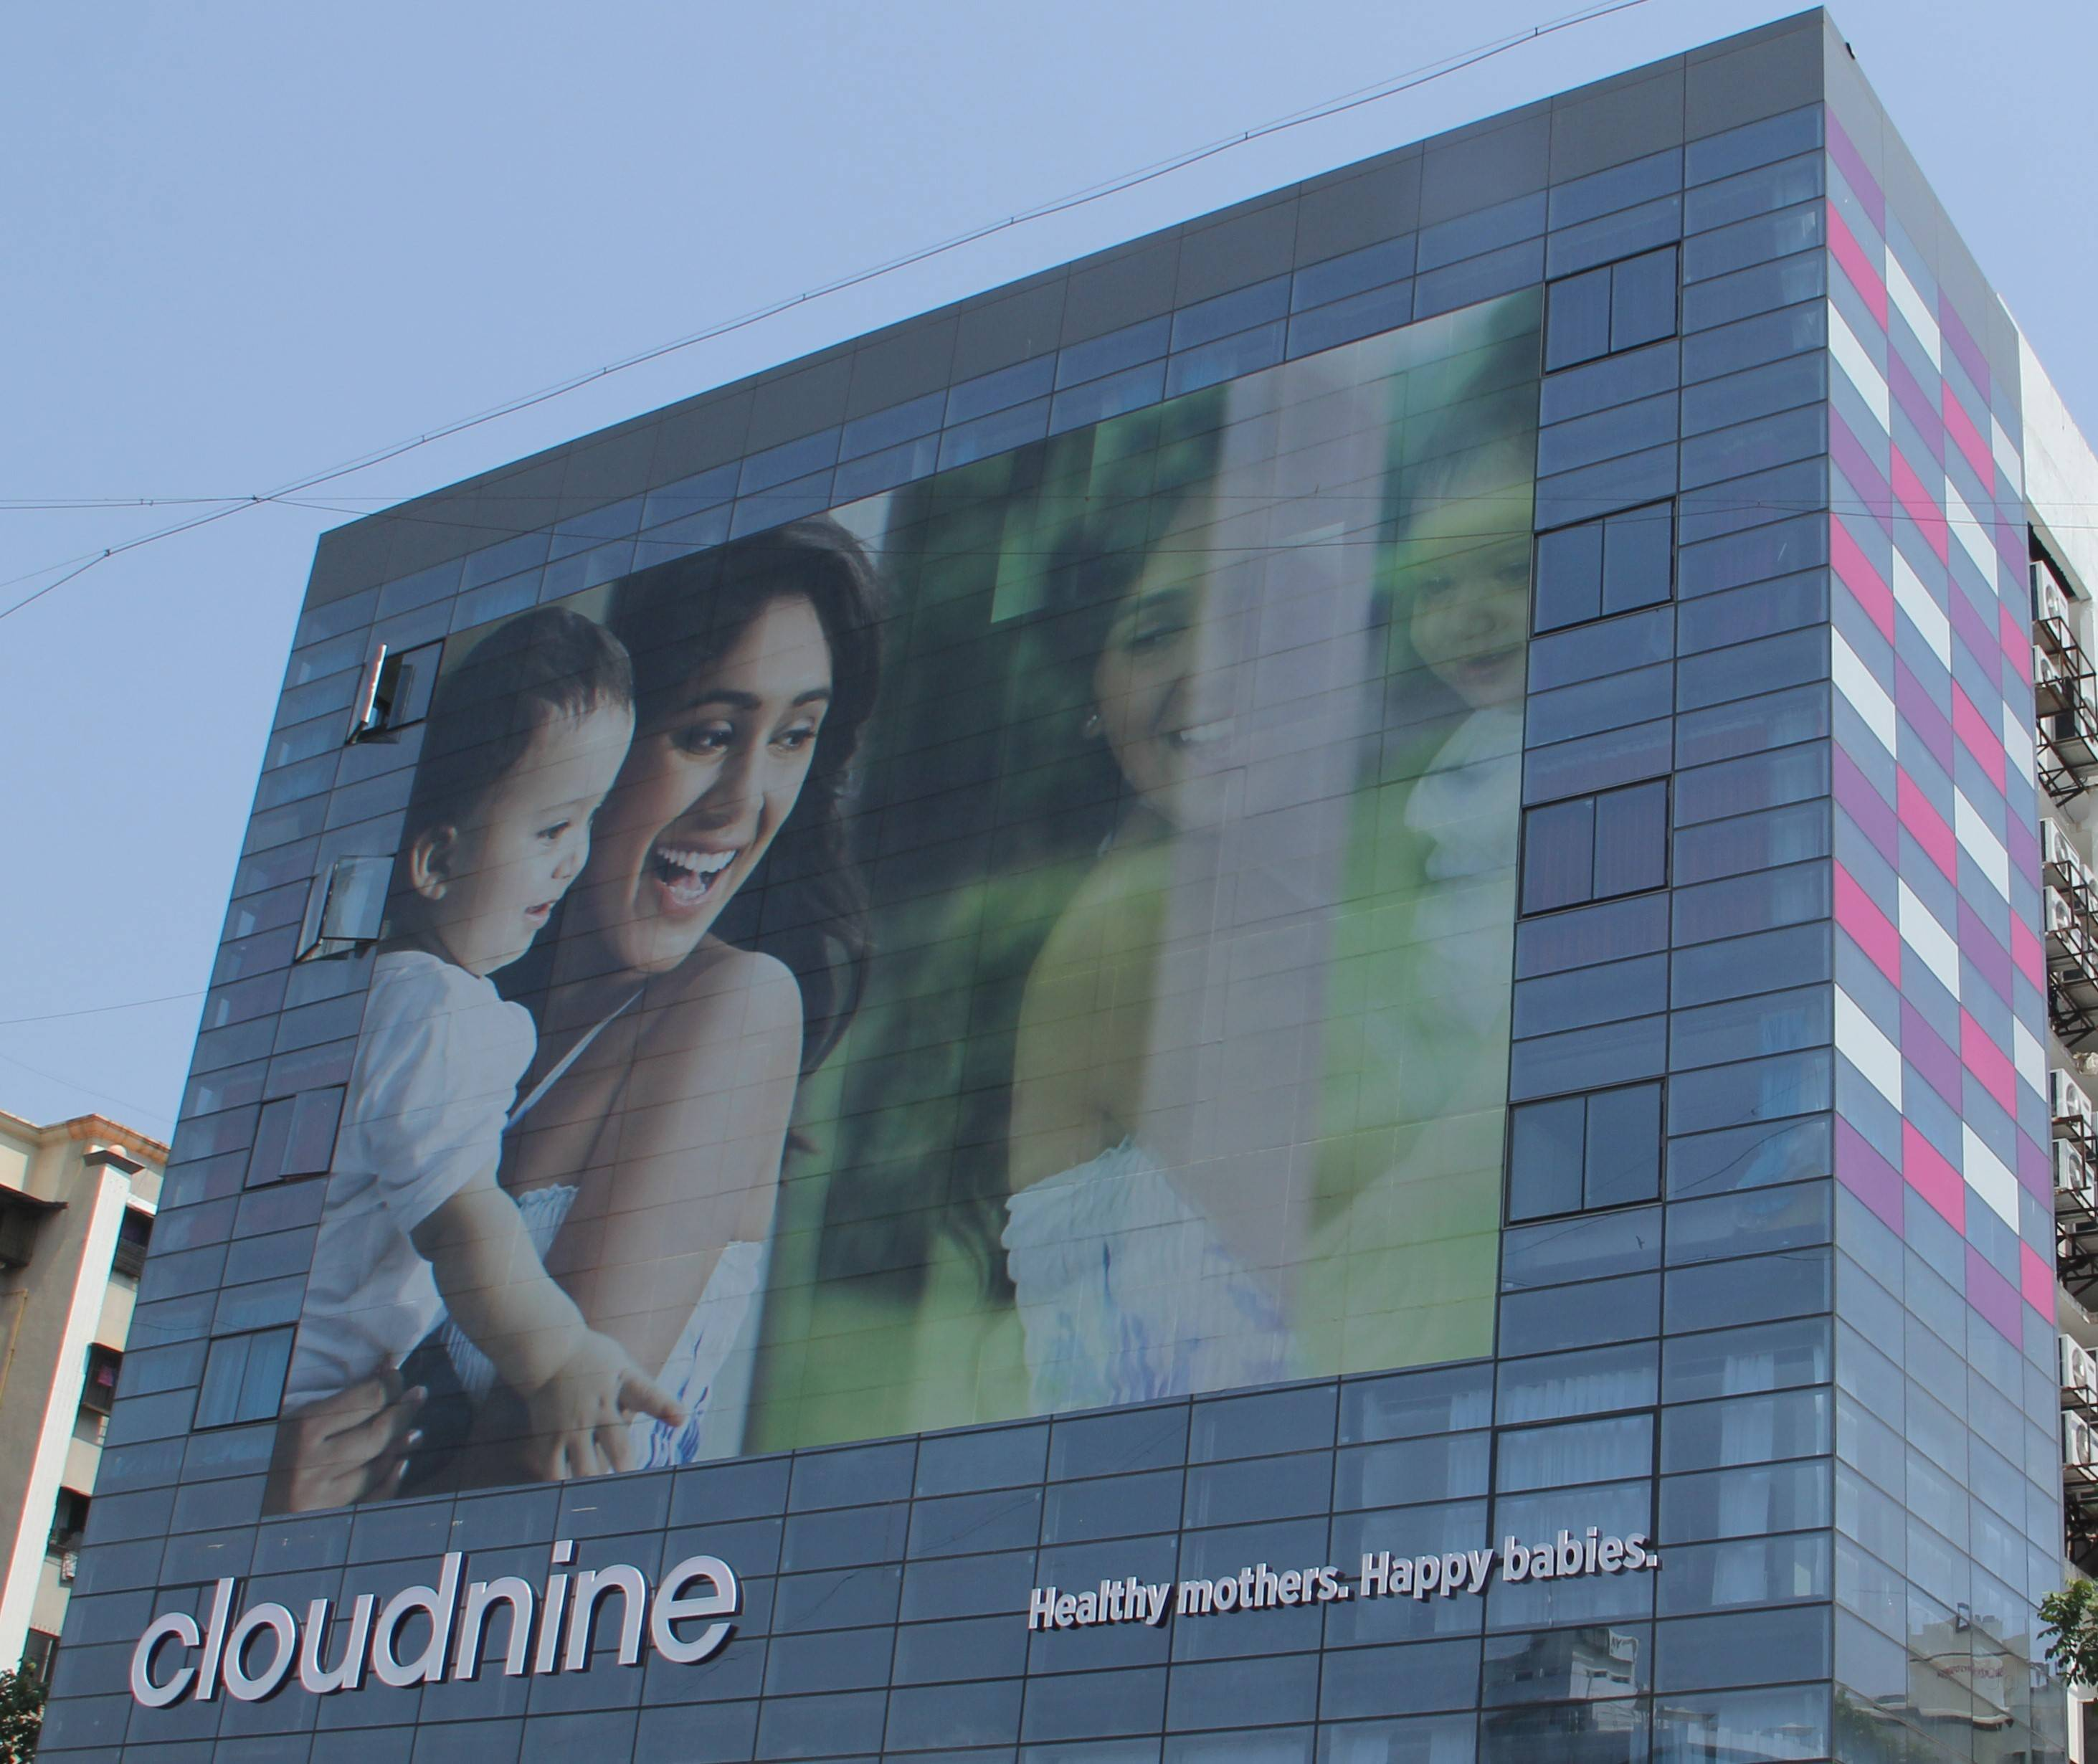 Couldnine Hospital - Malad - IVF Centre in Mumbai